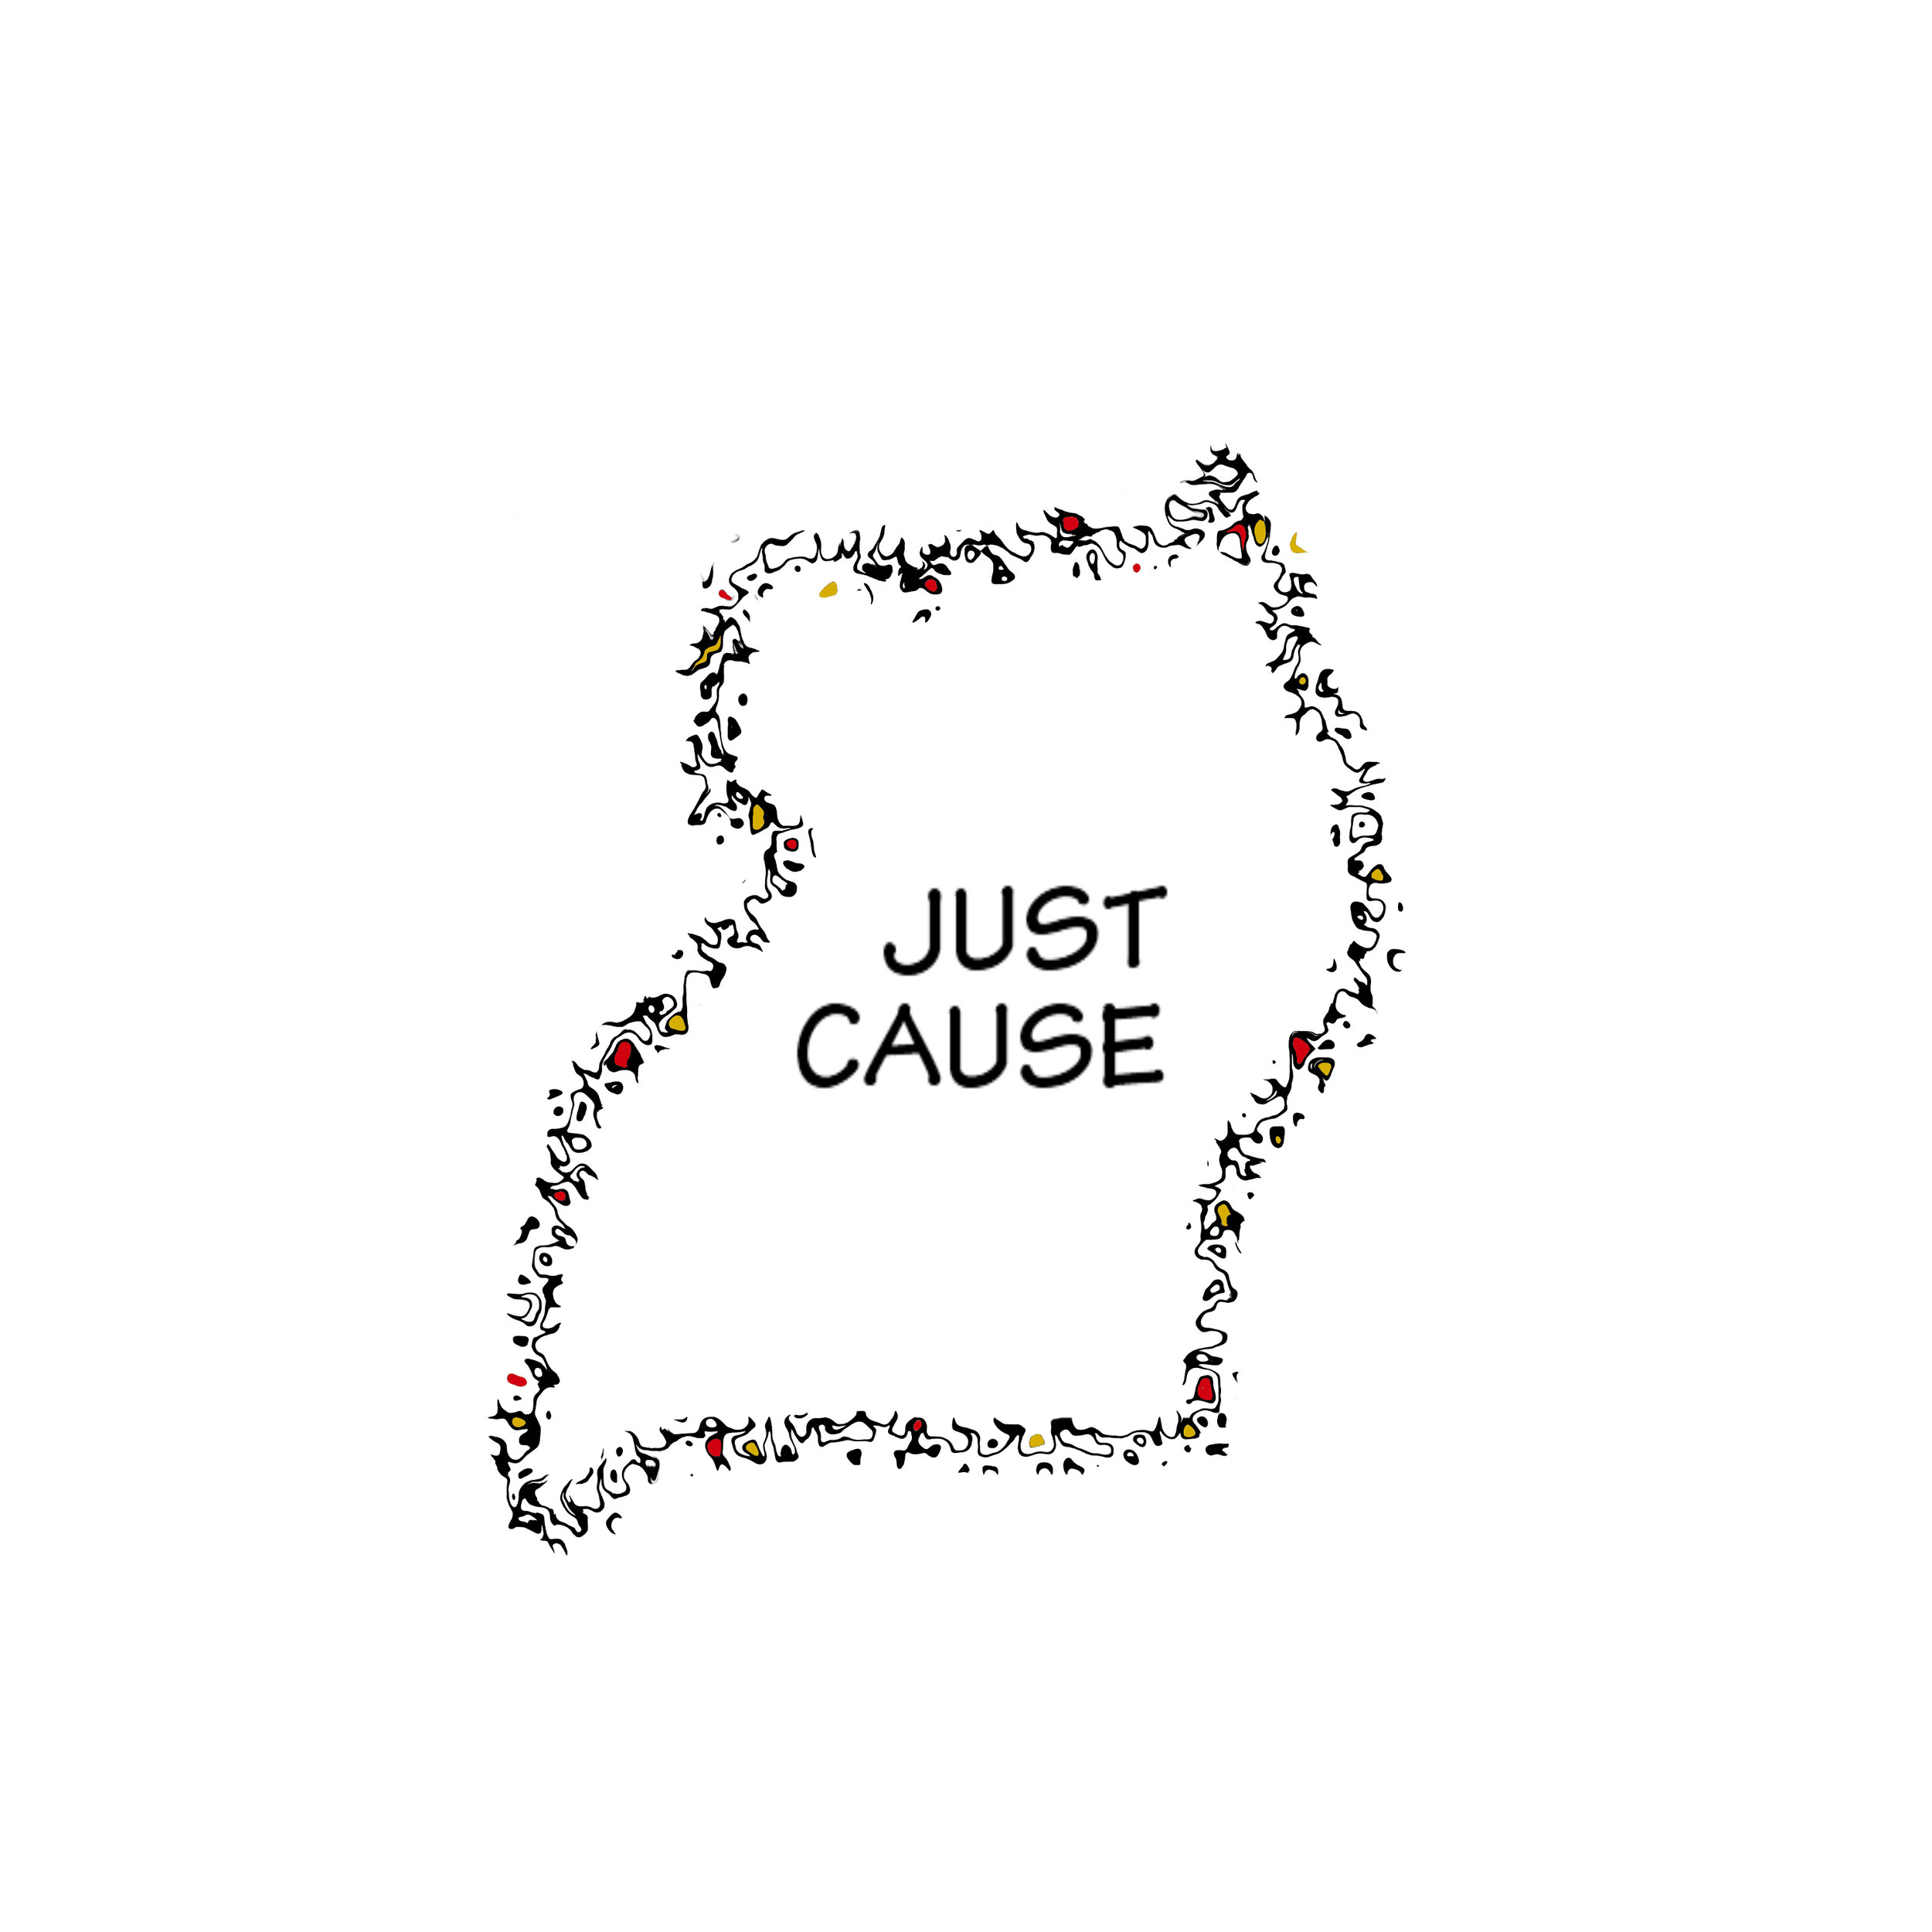 JUST-CAUSE-LOGO with large border.jpeg